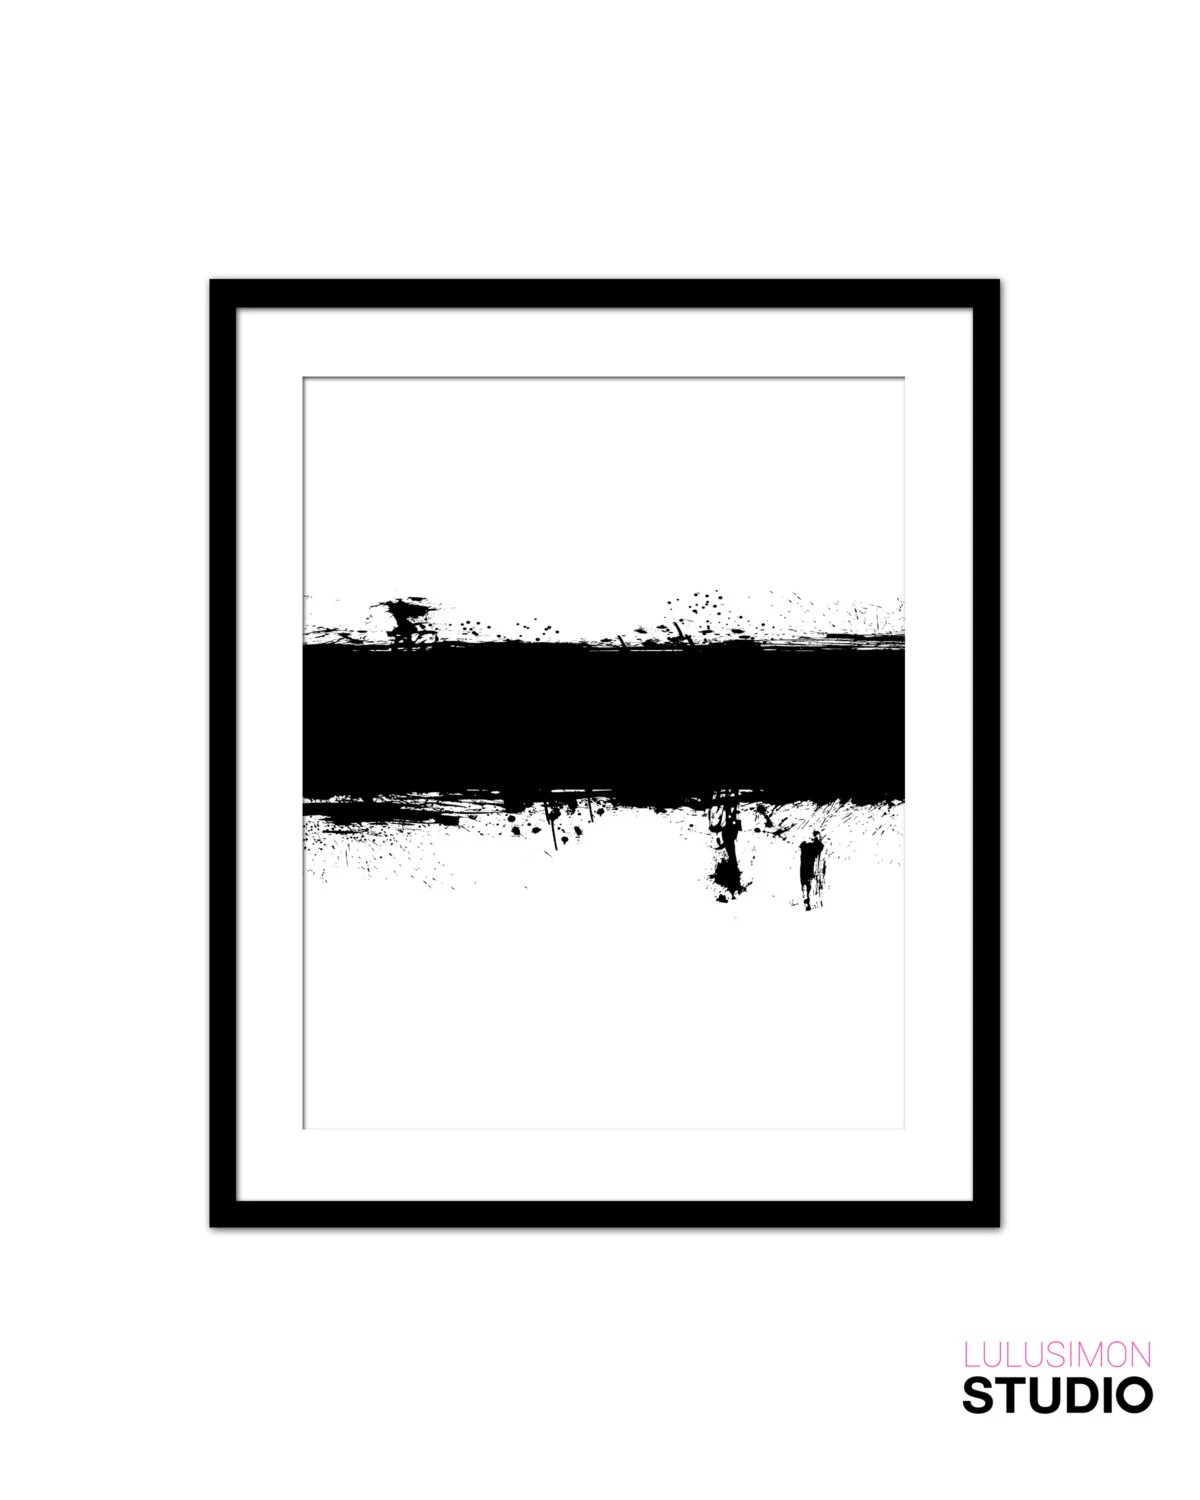 Items similar to Black With Silver Paint Stroke Pattern